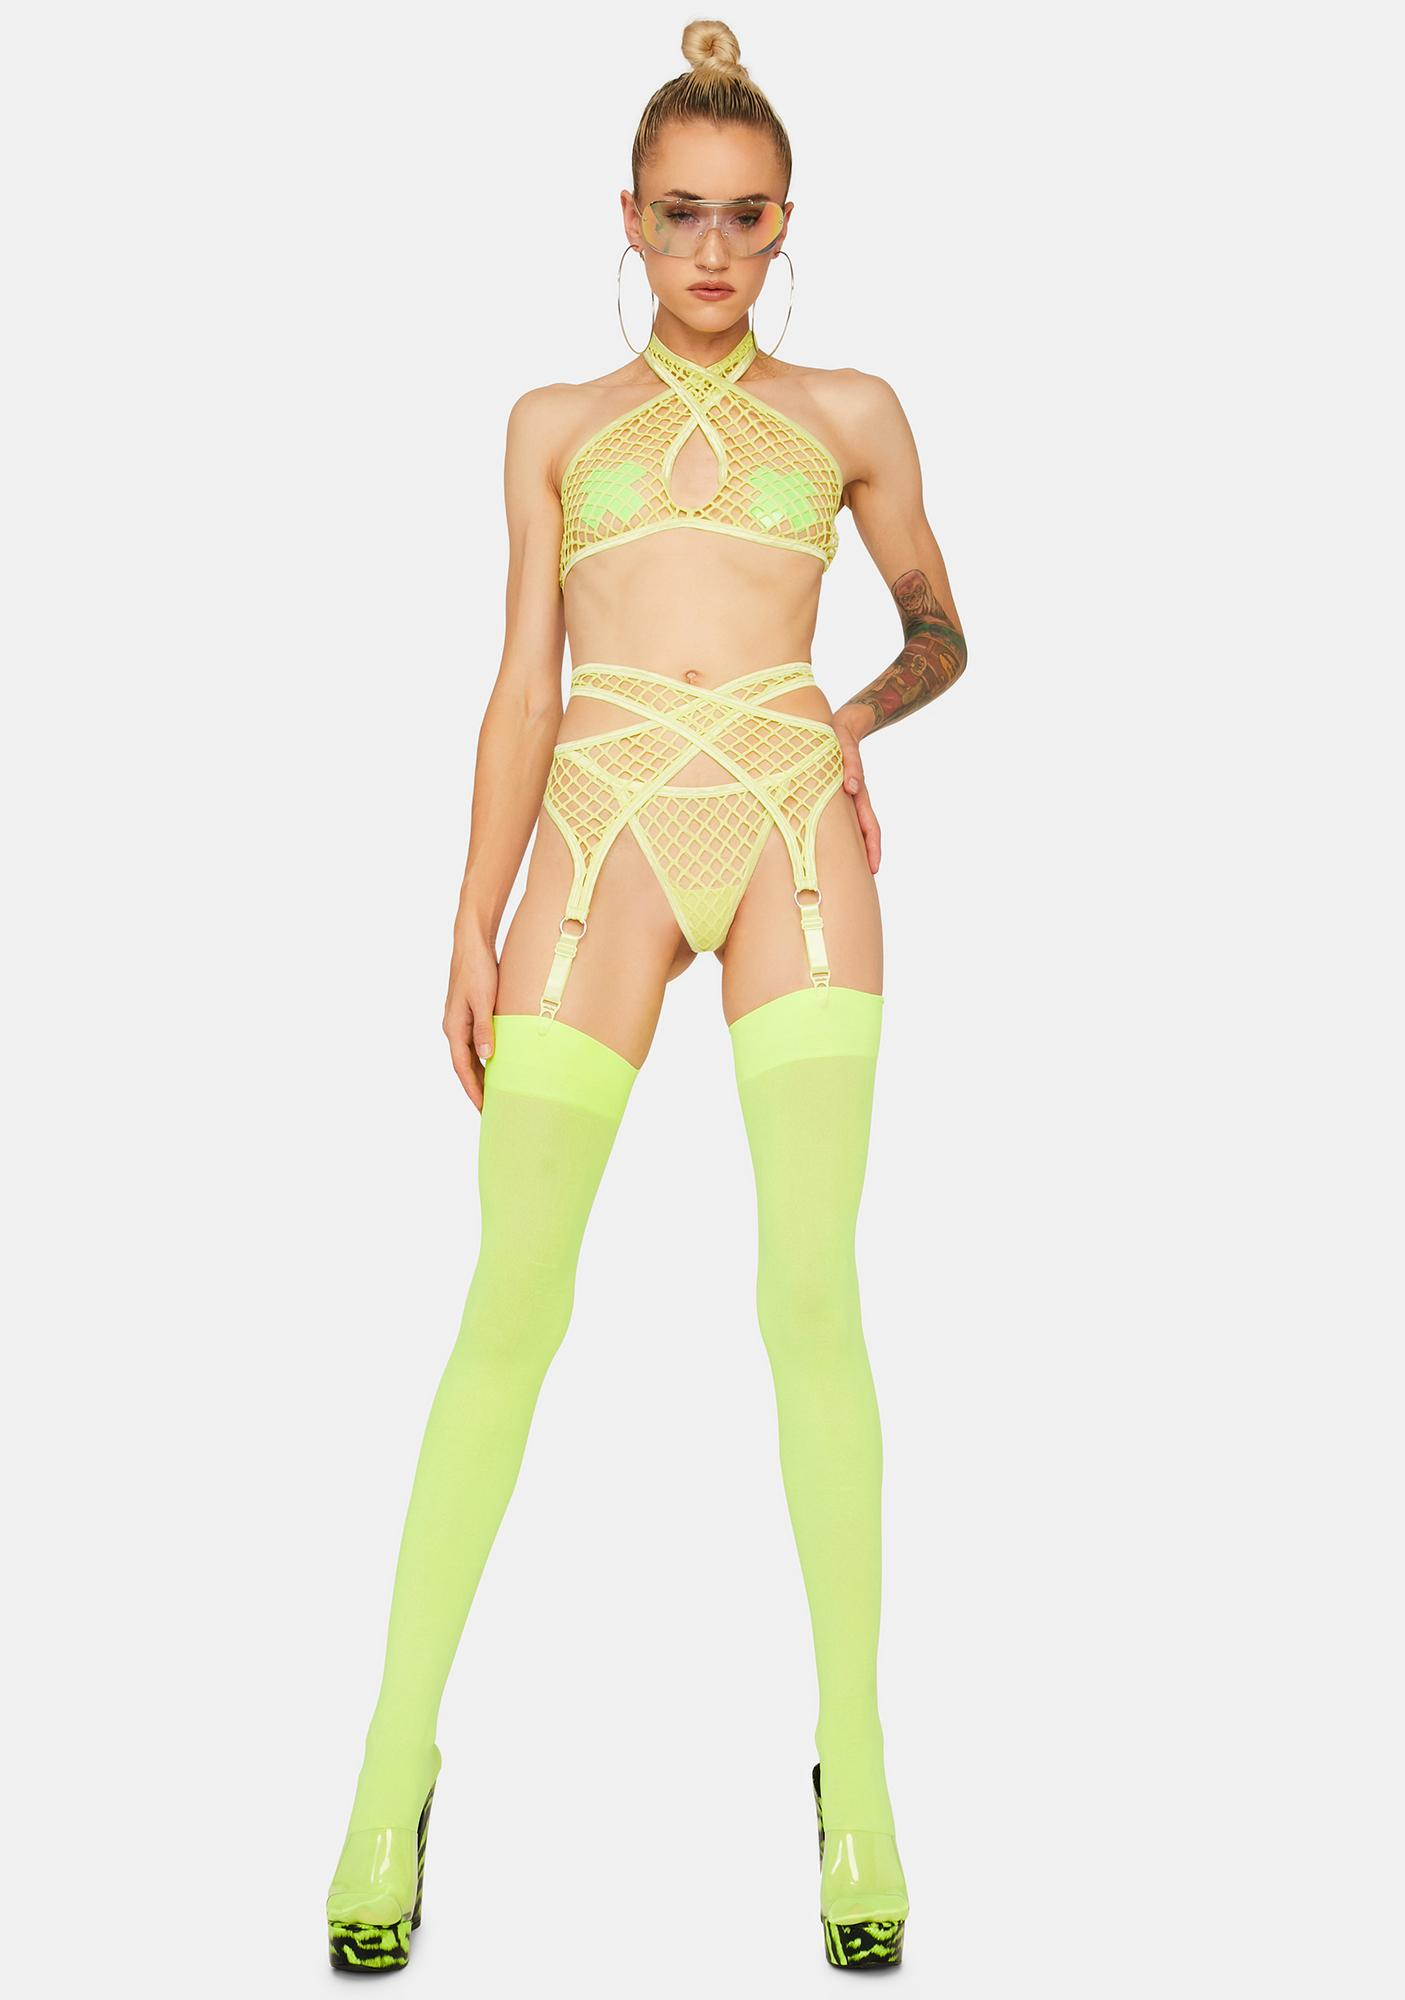 Atomic Lost In The Noise Garter Set